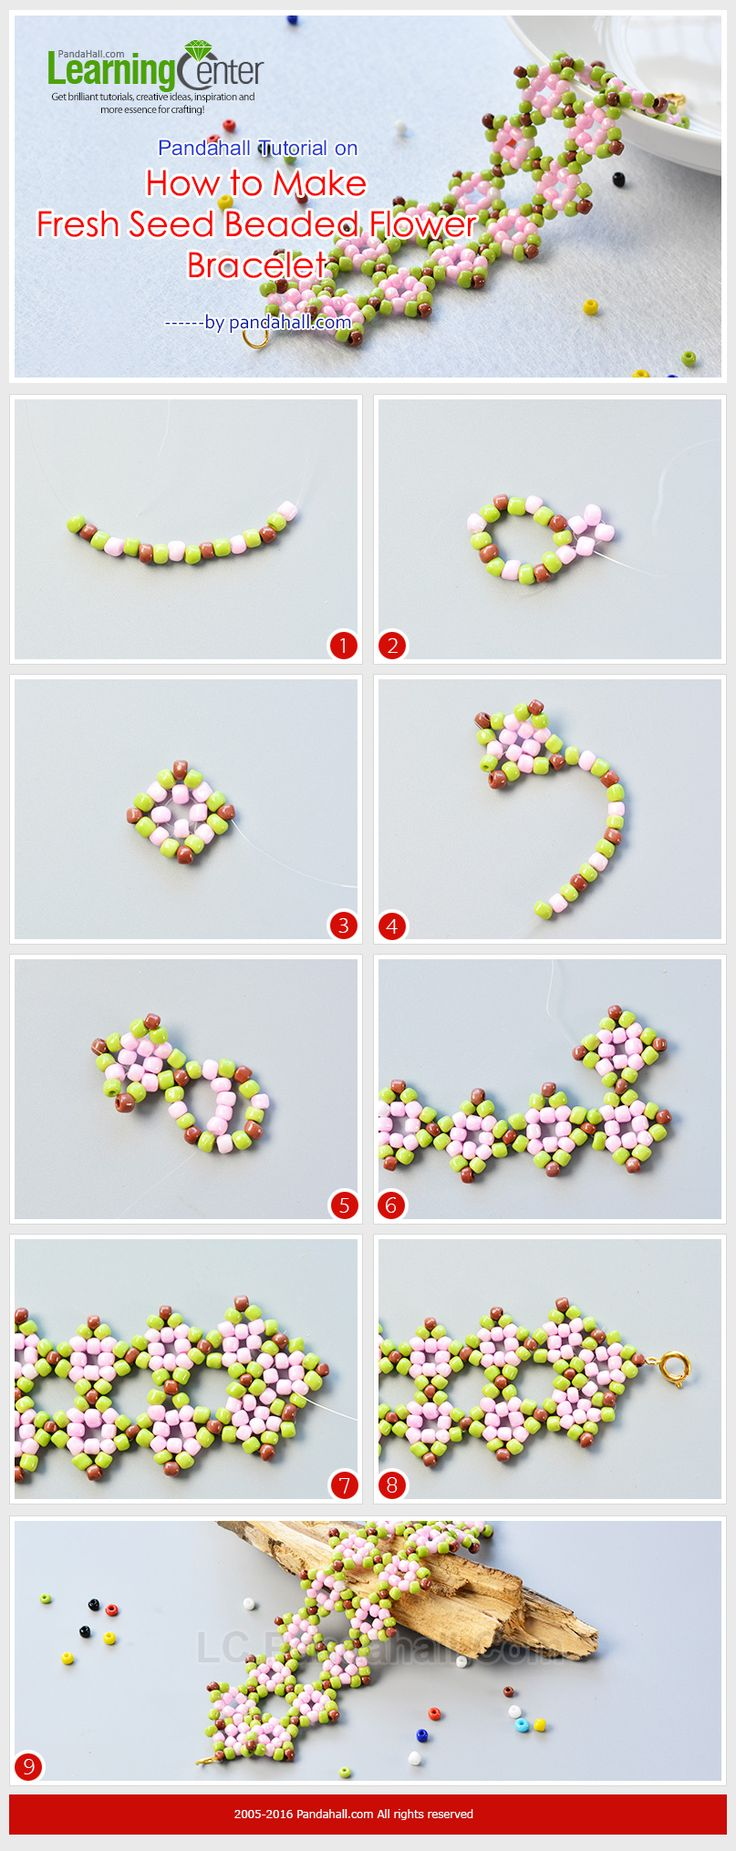 Pandahall Tutorial on How to Make Fresh Seed Beaded Flower Bracelet from LC.Pandahall.com